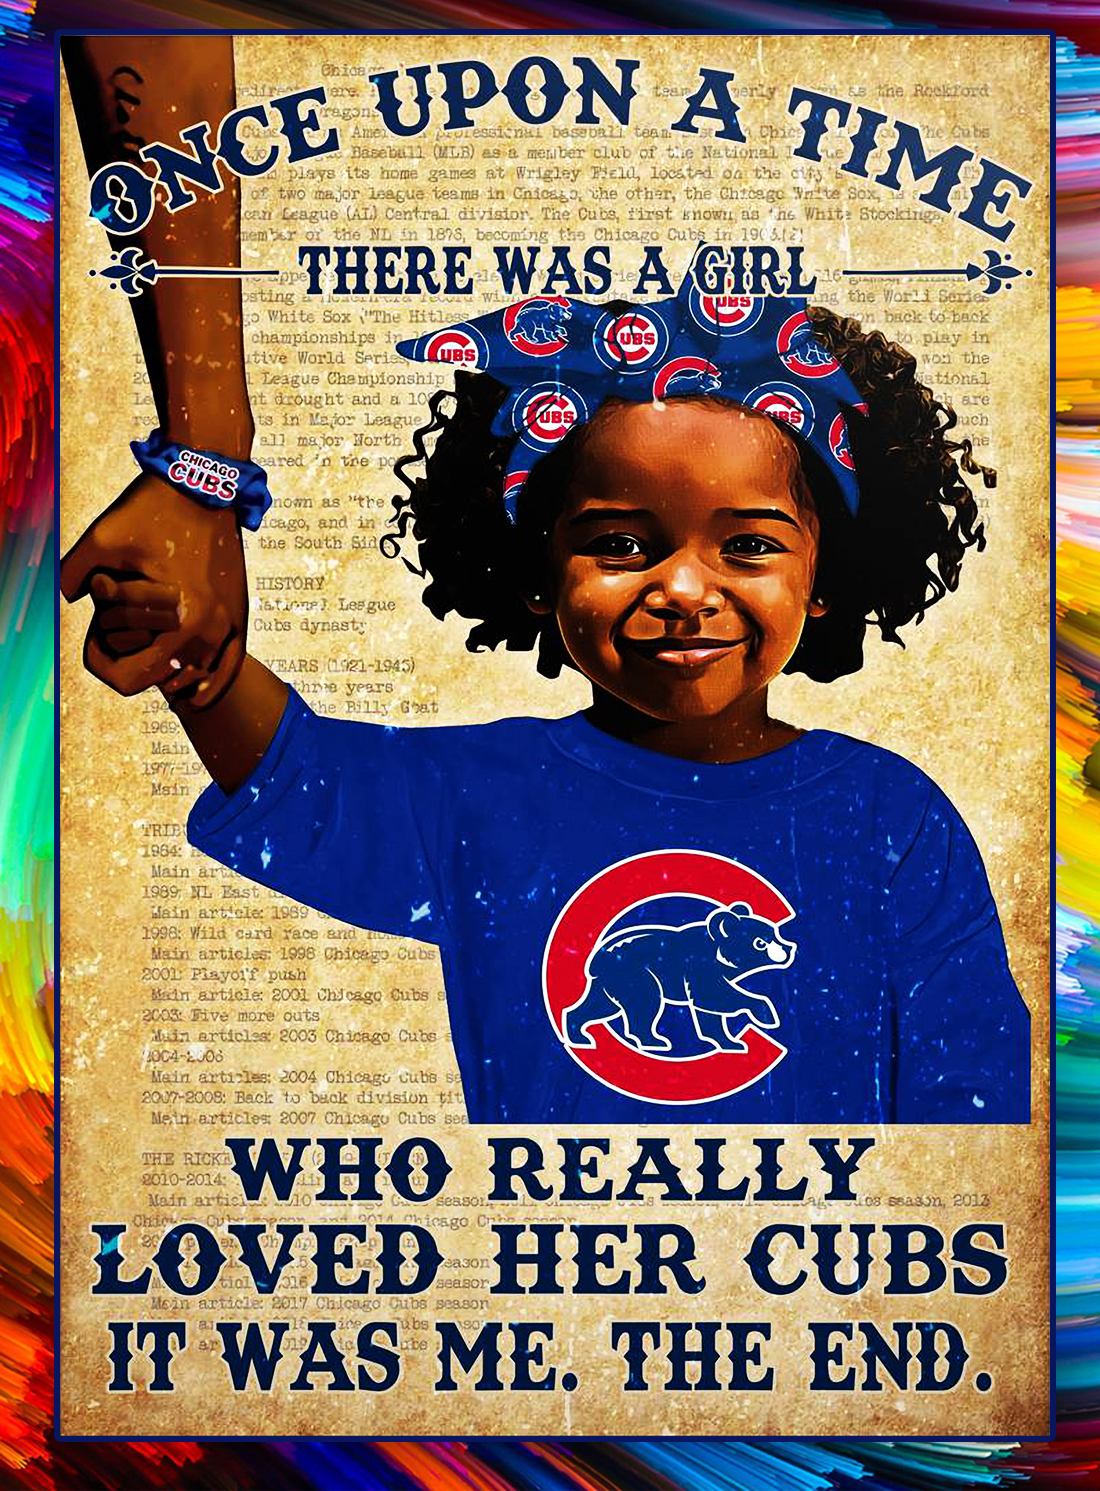 Once upon a time there was a girl who really loved her cubs poster - Black Girl